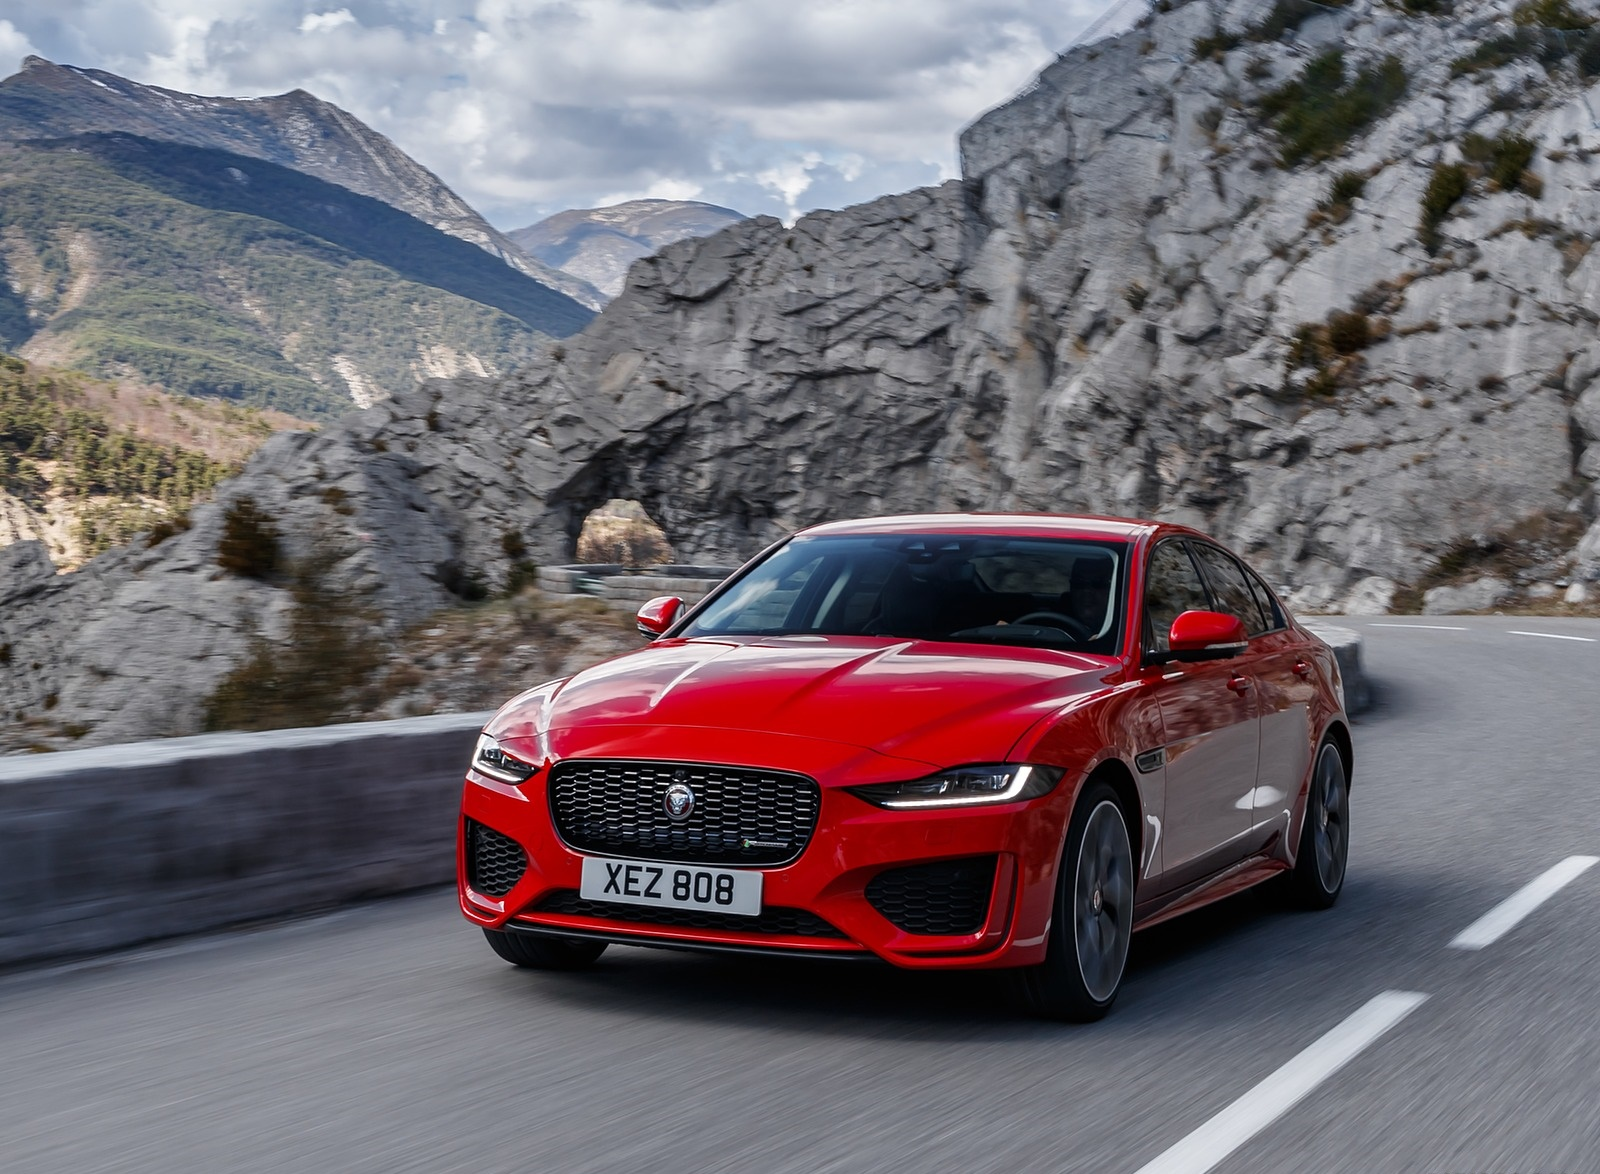 2020 Jaguar XE S R-Dynamic P300 (Color: Caldera Red) Front Three-Quarter Wallpapers (1)